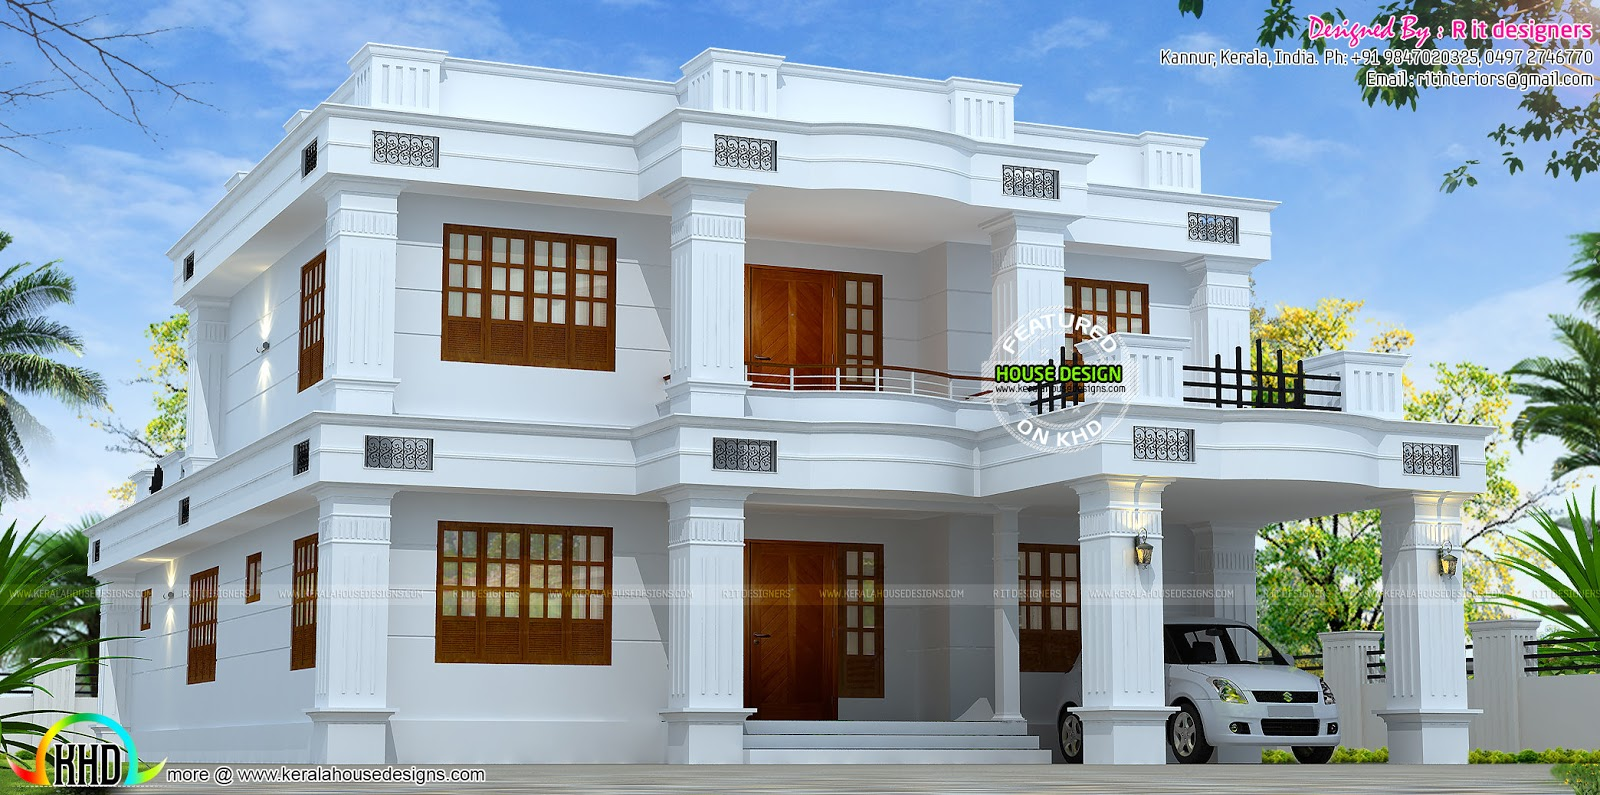 February 2016 kerala home design and floor plans for House plans in kerala with 2 bedrooms